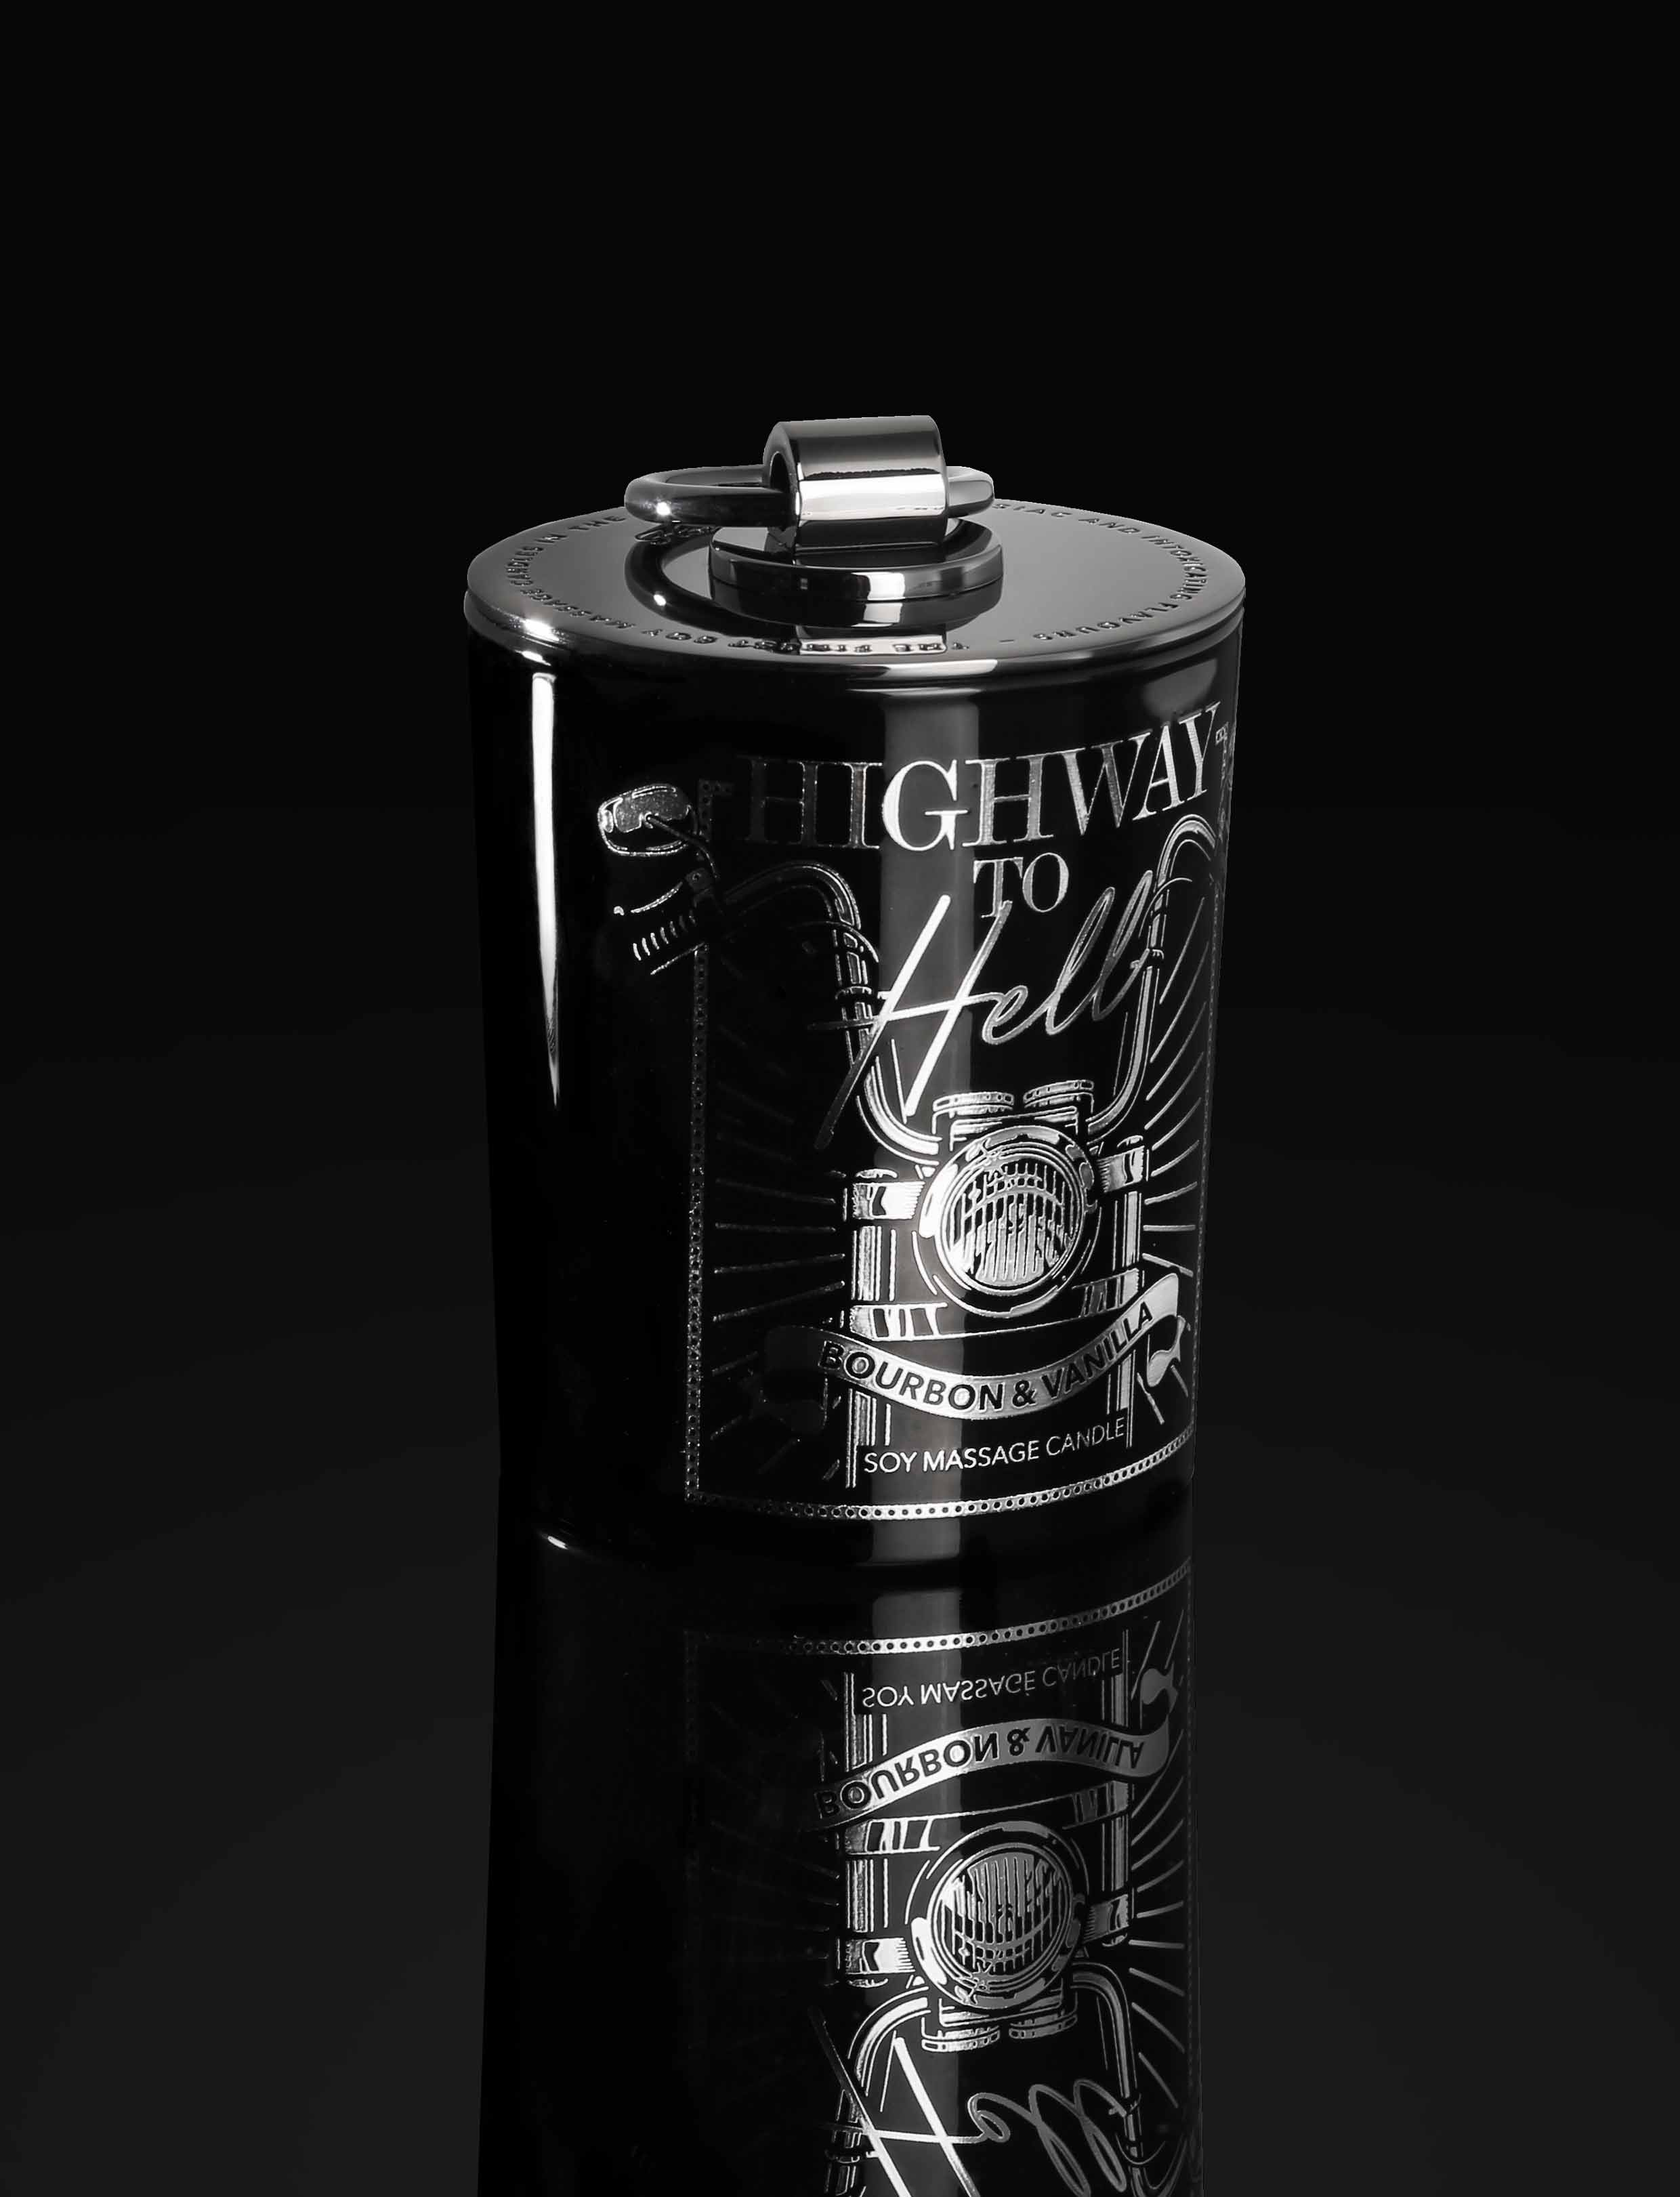 Highway To Hell Massage Candle